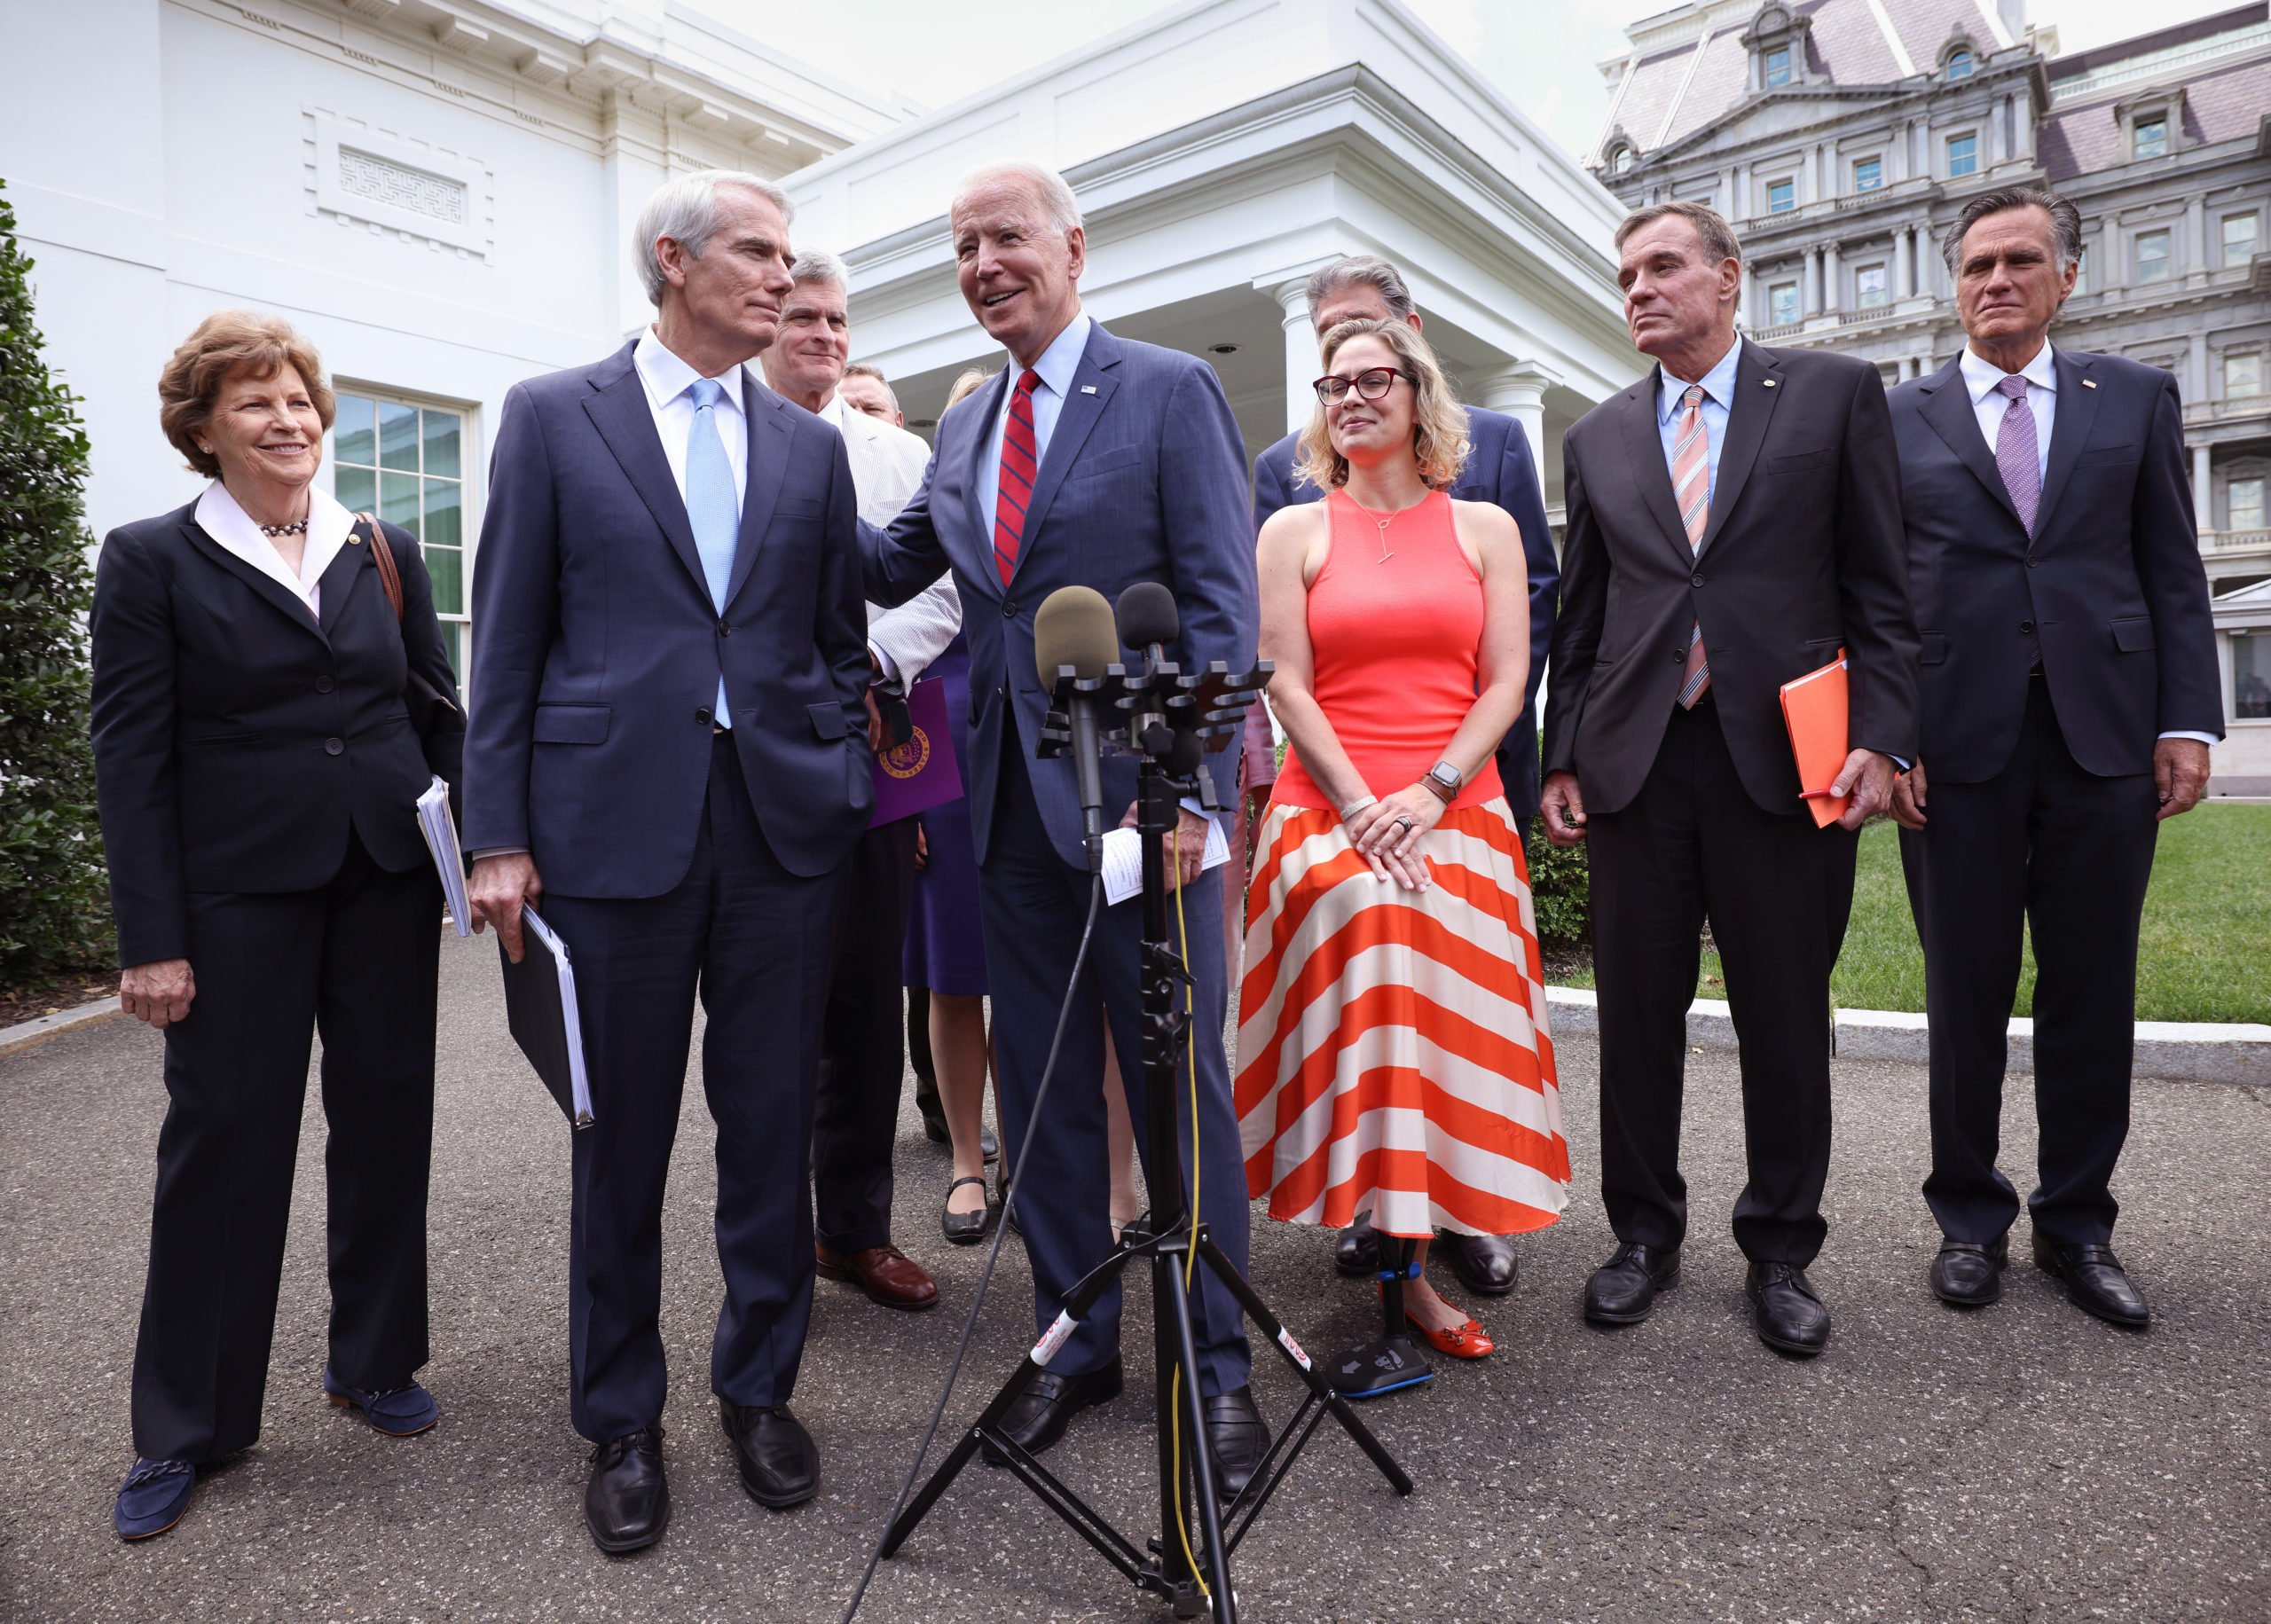 President Joe Biden speaks with a bipartisan group of Senators after reaching a deal on an infrastructure package on June 24. (Kevin Dietsch/Getty Images)